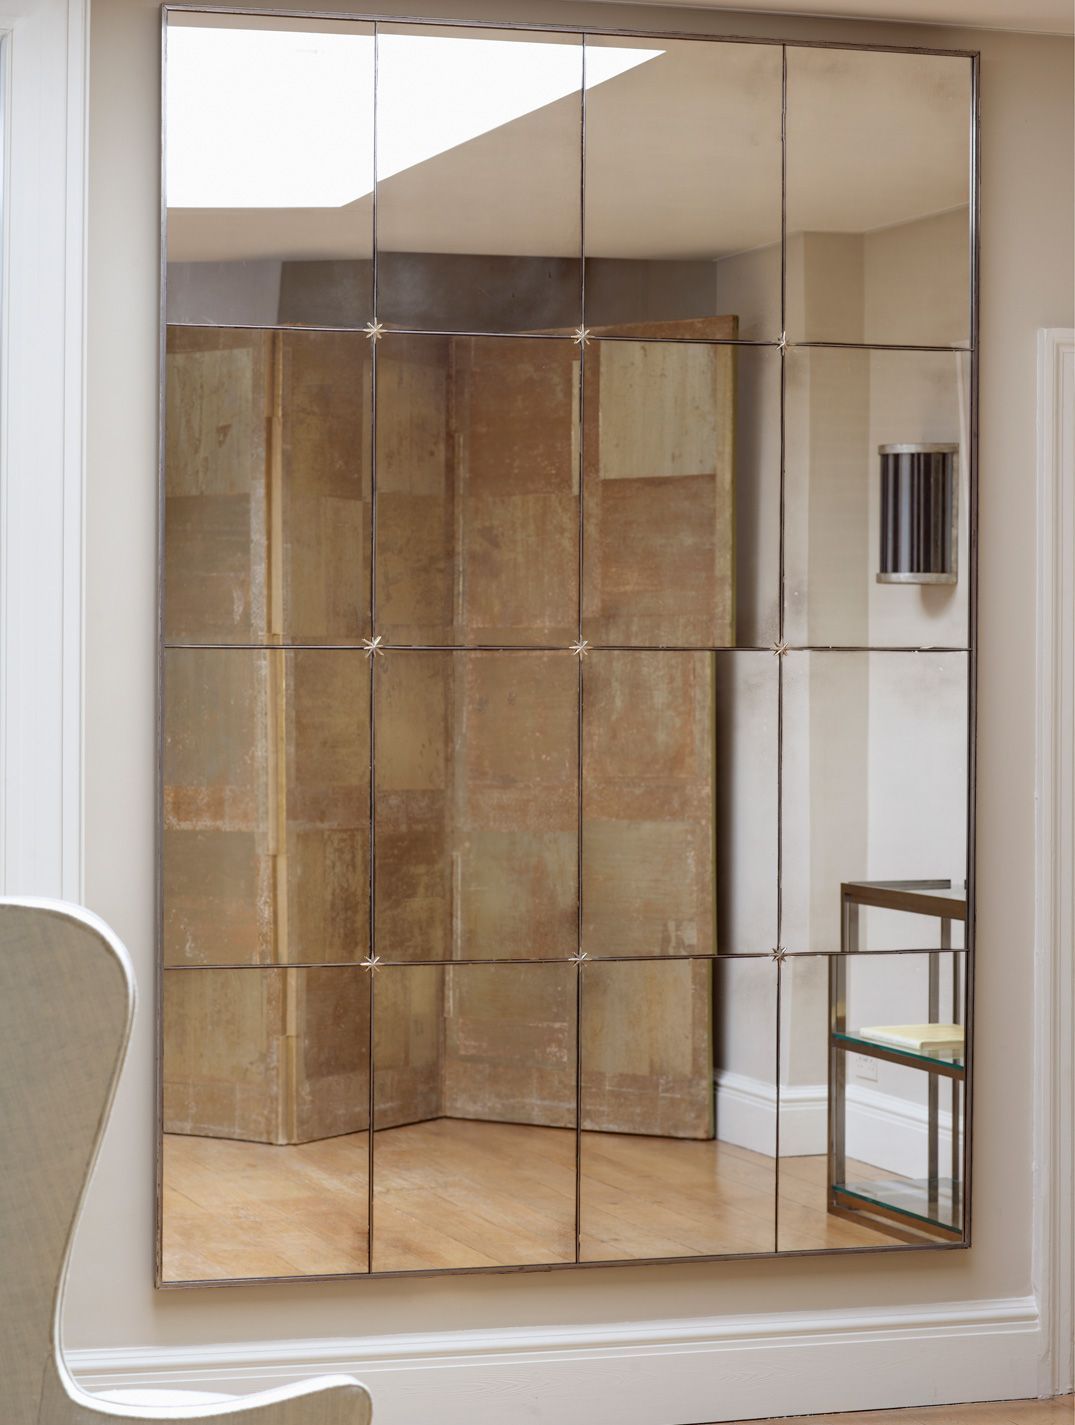 Panelled mirror | Lighted wall mirror, Wall design, Living ...